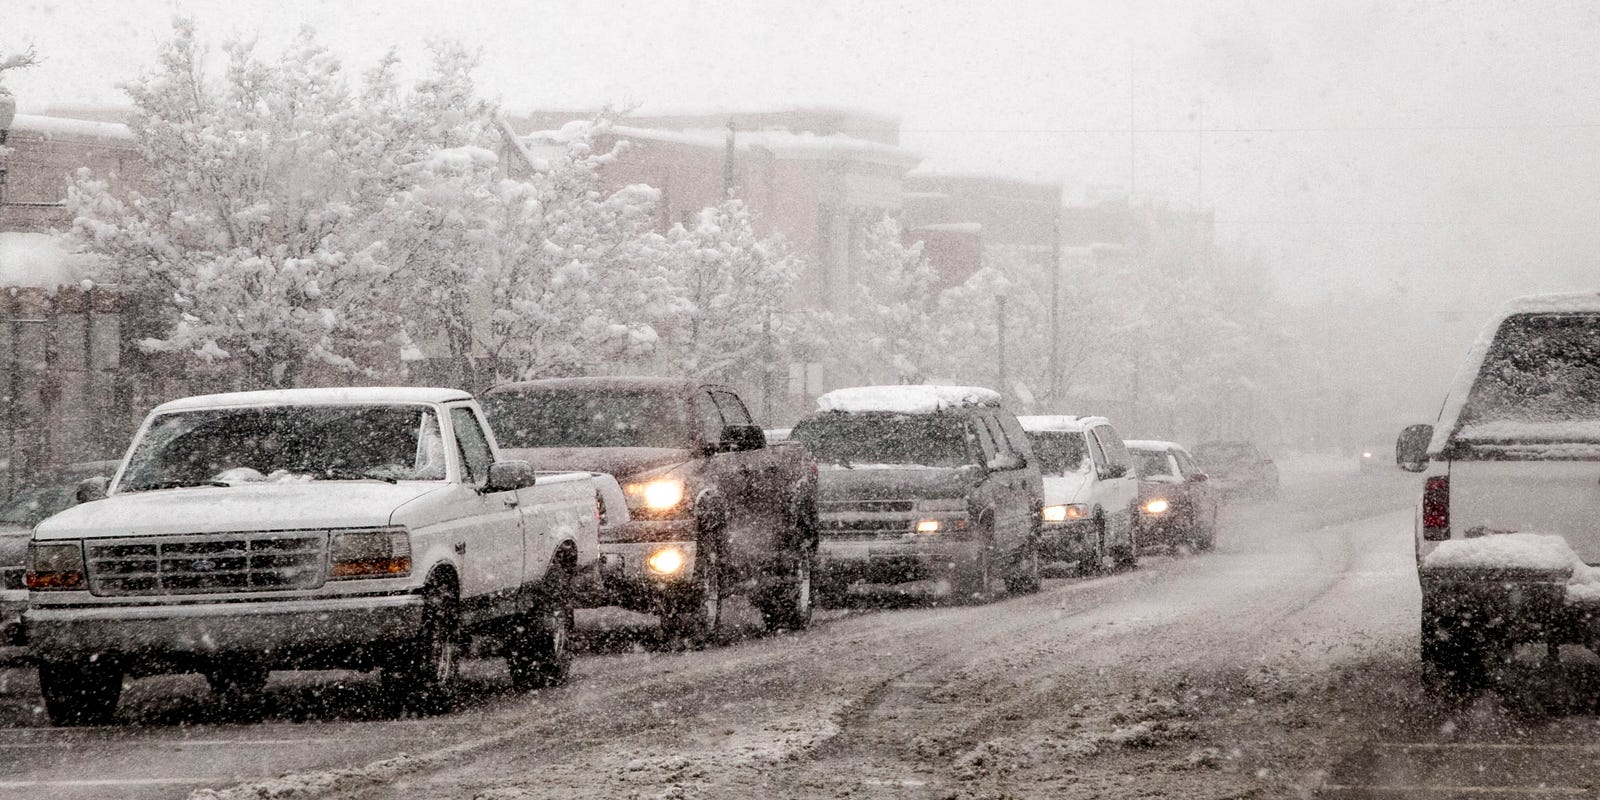 Thanksgiving snow in St. George? Get ready for a rough Utah travel week